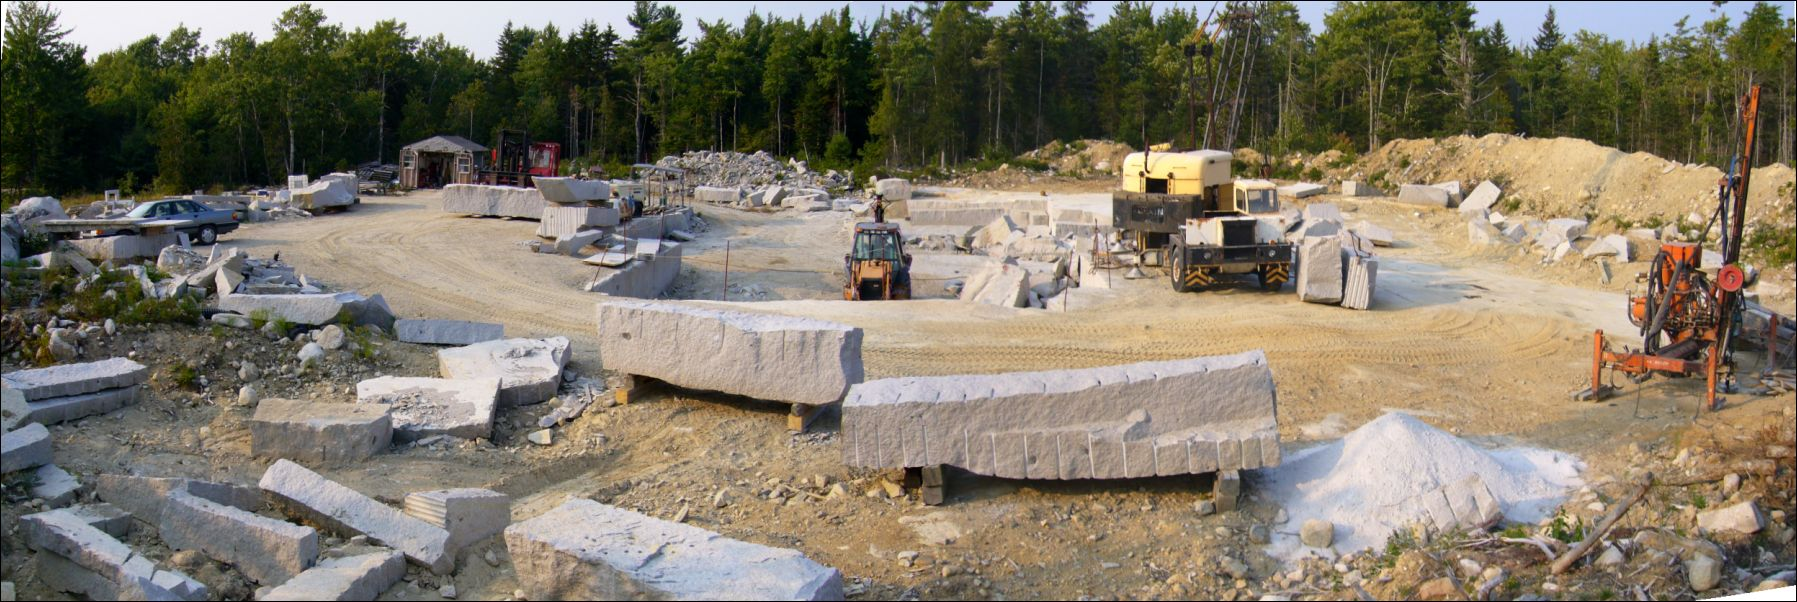 granite quarry dating site National building granite quarries association we are an association of north american granite quarriers providing 60+ colors of building stone to the commercial market colors browse our gallery of granite colors that are quarried in north america see all granites or filter by primary color or member company.